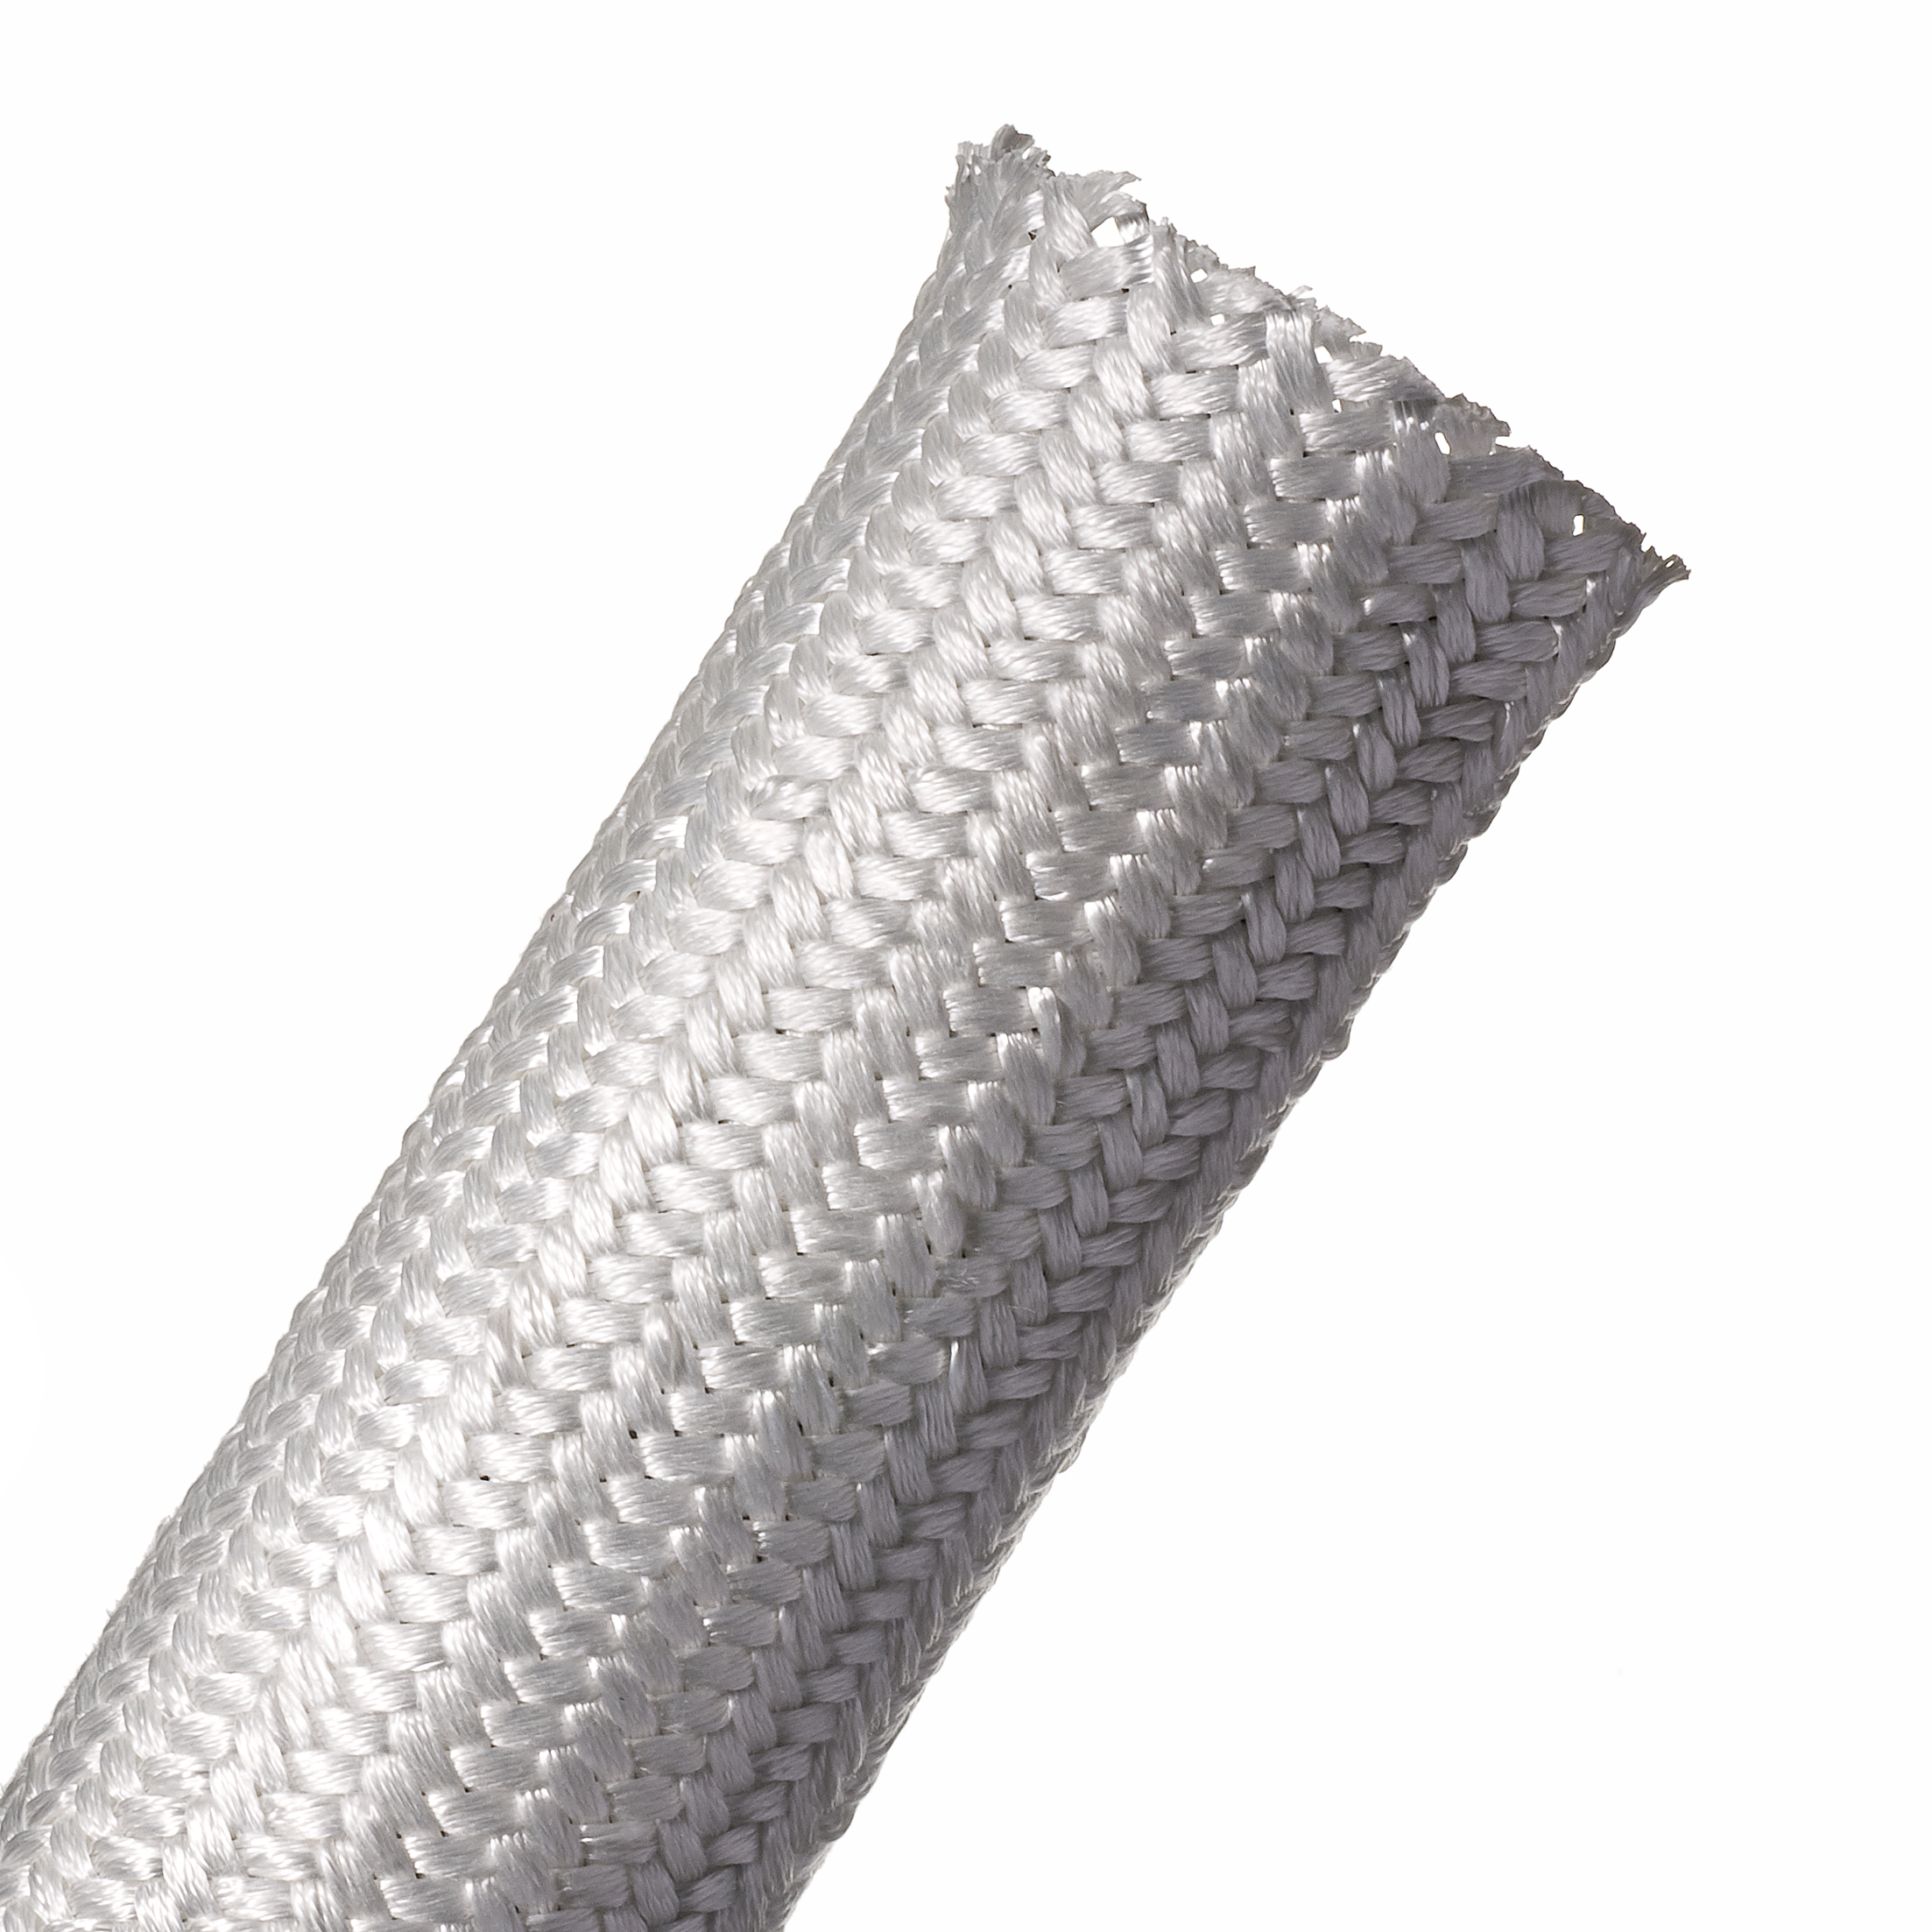 Silica Sleeving 6.35 mm 15.24 m